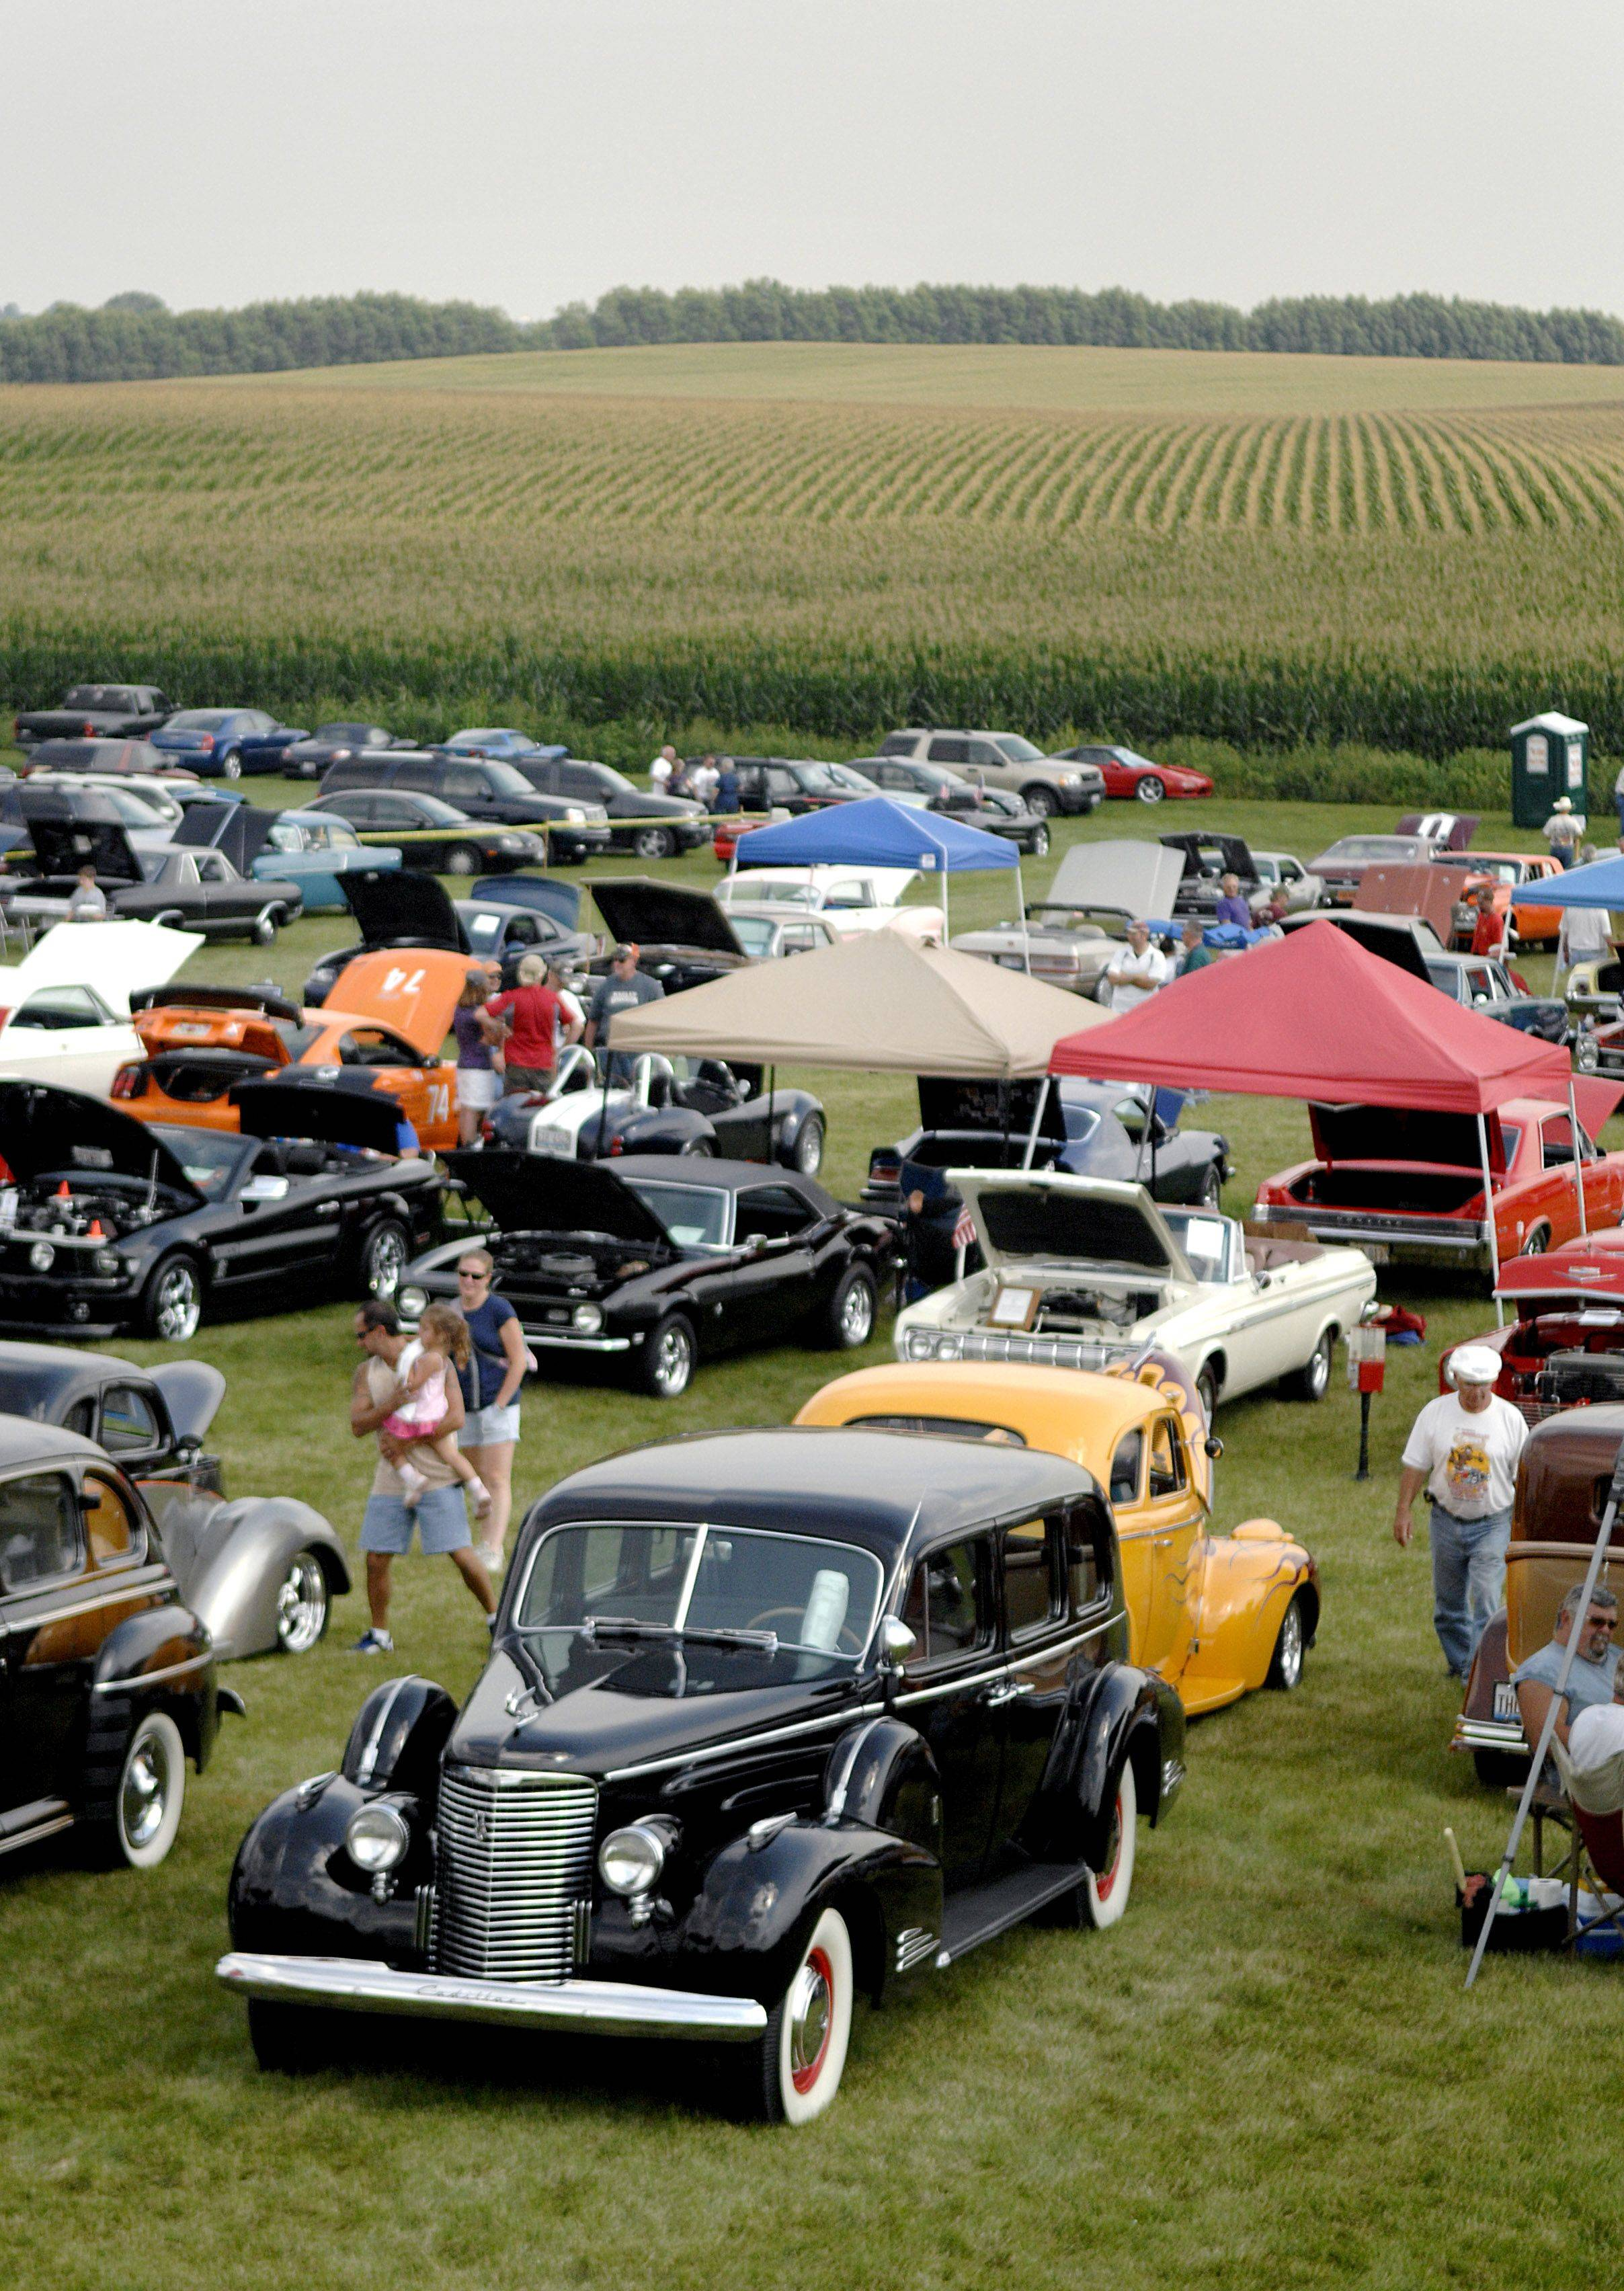 Classic and antique cars of all makes and models sit on display near a cornfield for Kane County Sheriff Pat Perez's third annual car and motorcycle show fundraiser, which benefited the Figgins Foundation. This year's show, set for Saturday, Sept. 3, will benefit Special Olympics. The event is held at the Martin family farm in Elburn.